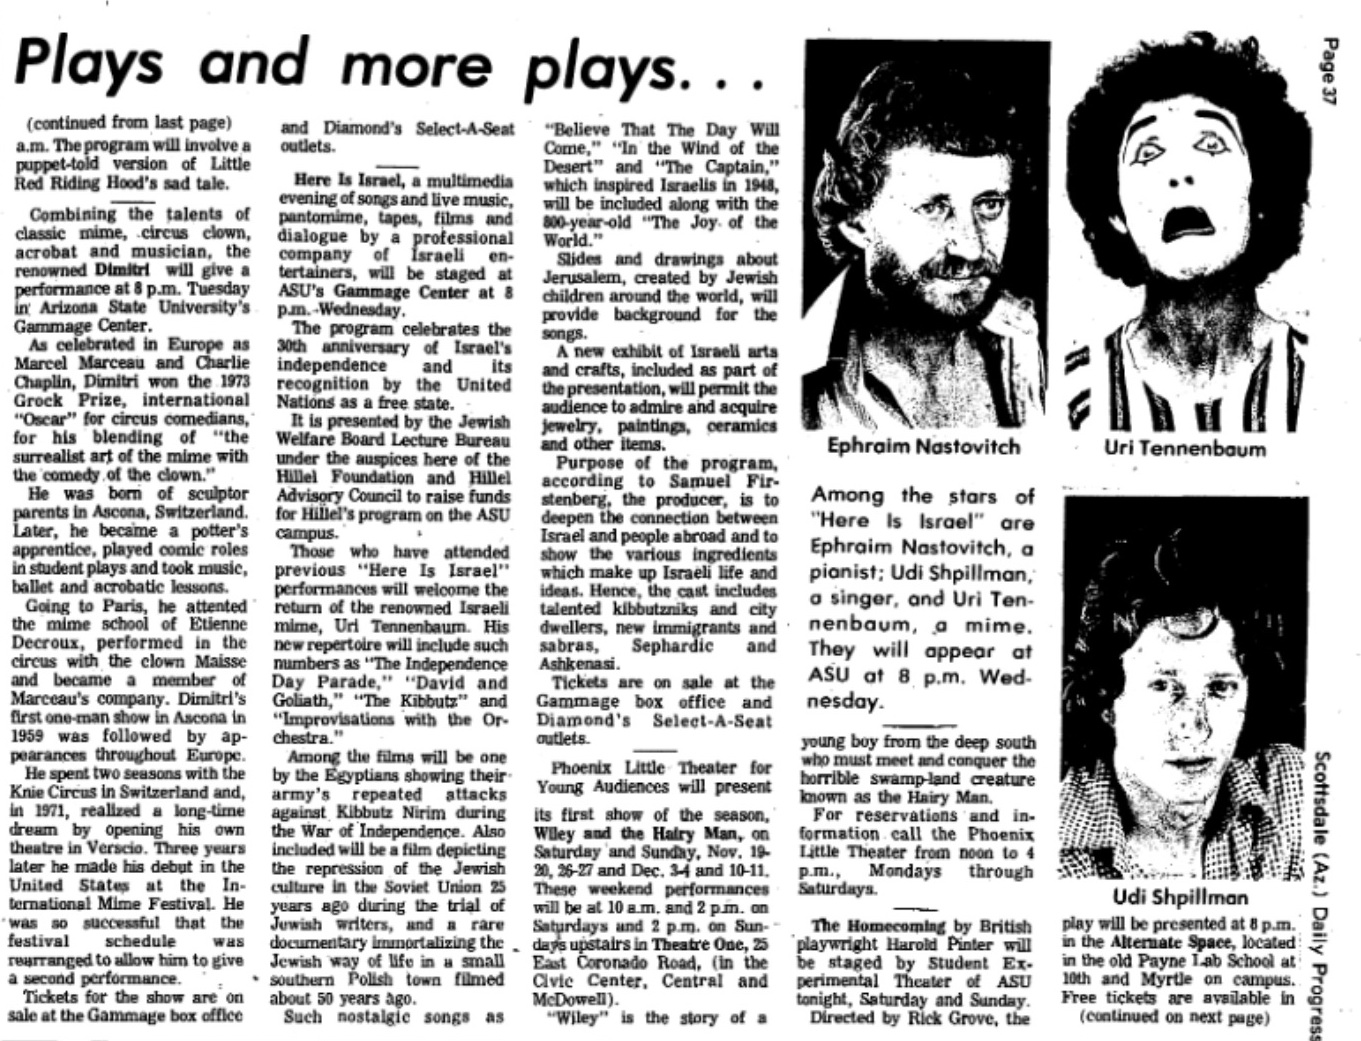 Theater Topics, Nov. 11, 1977a